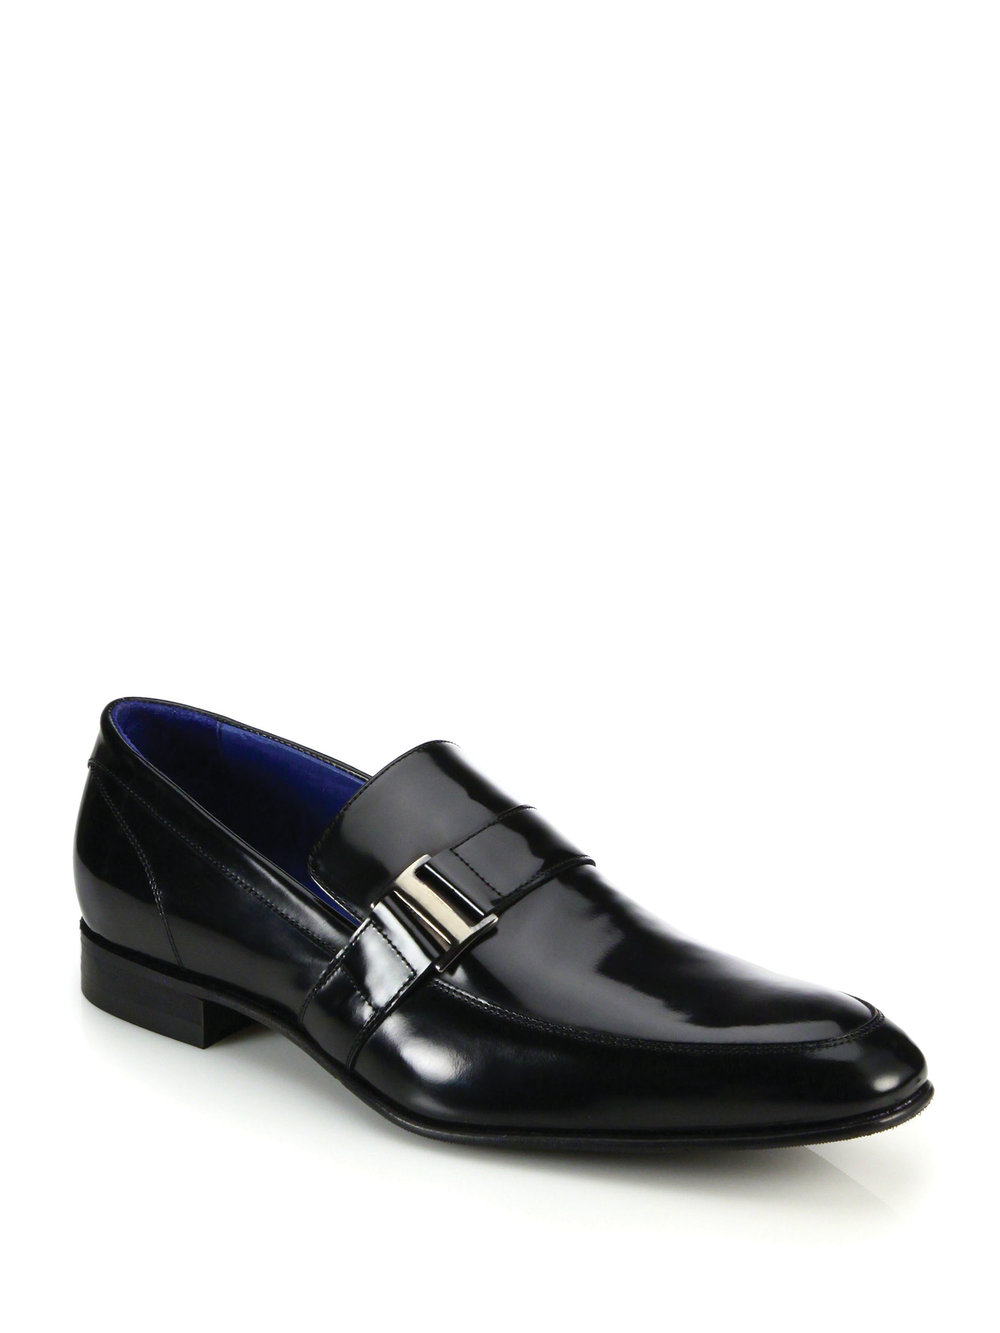 10. Freddy Side-Buckle Leather Loafers by Saks Fifth Avenue Collection ‬$325, saksfifthavenue.com